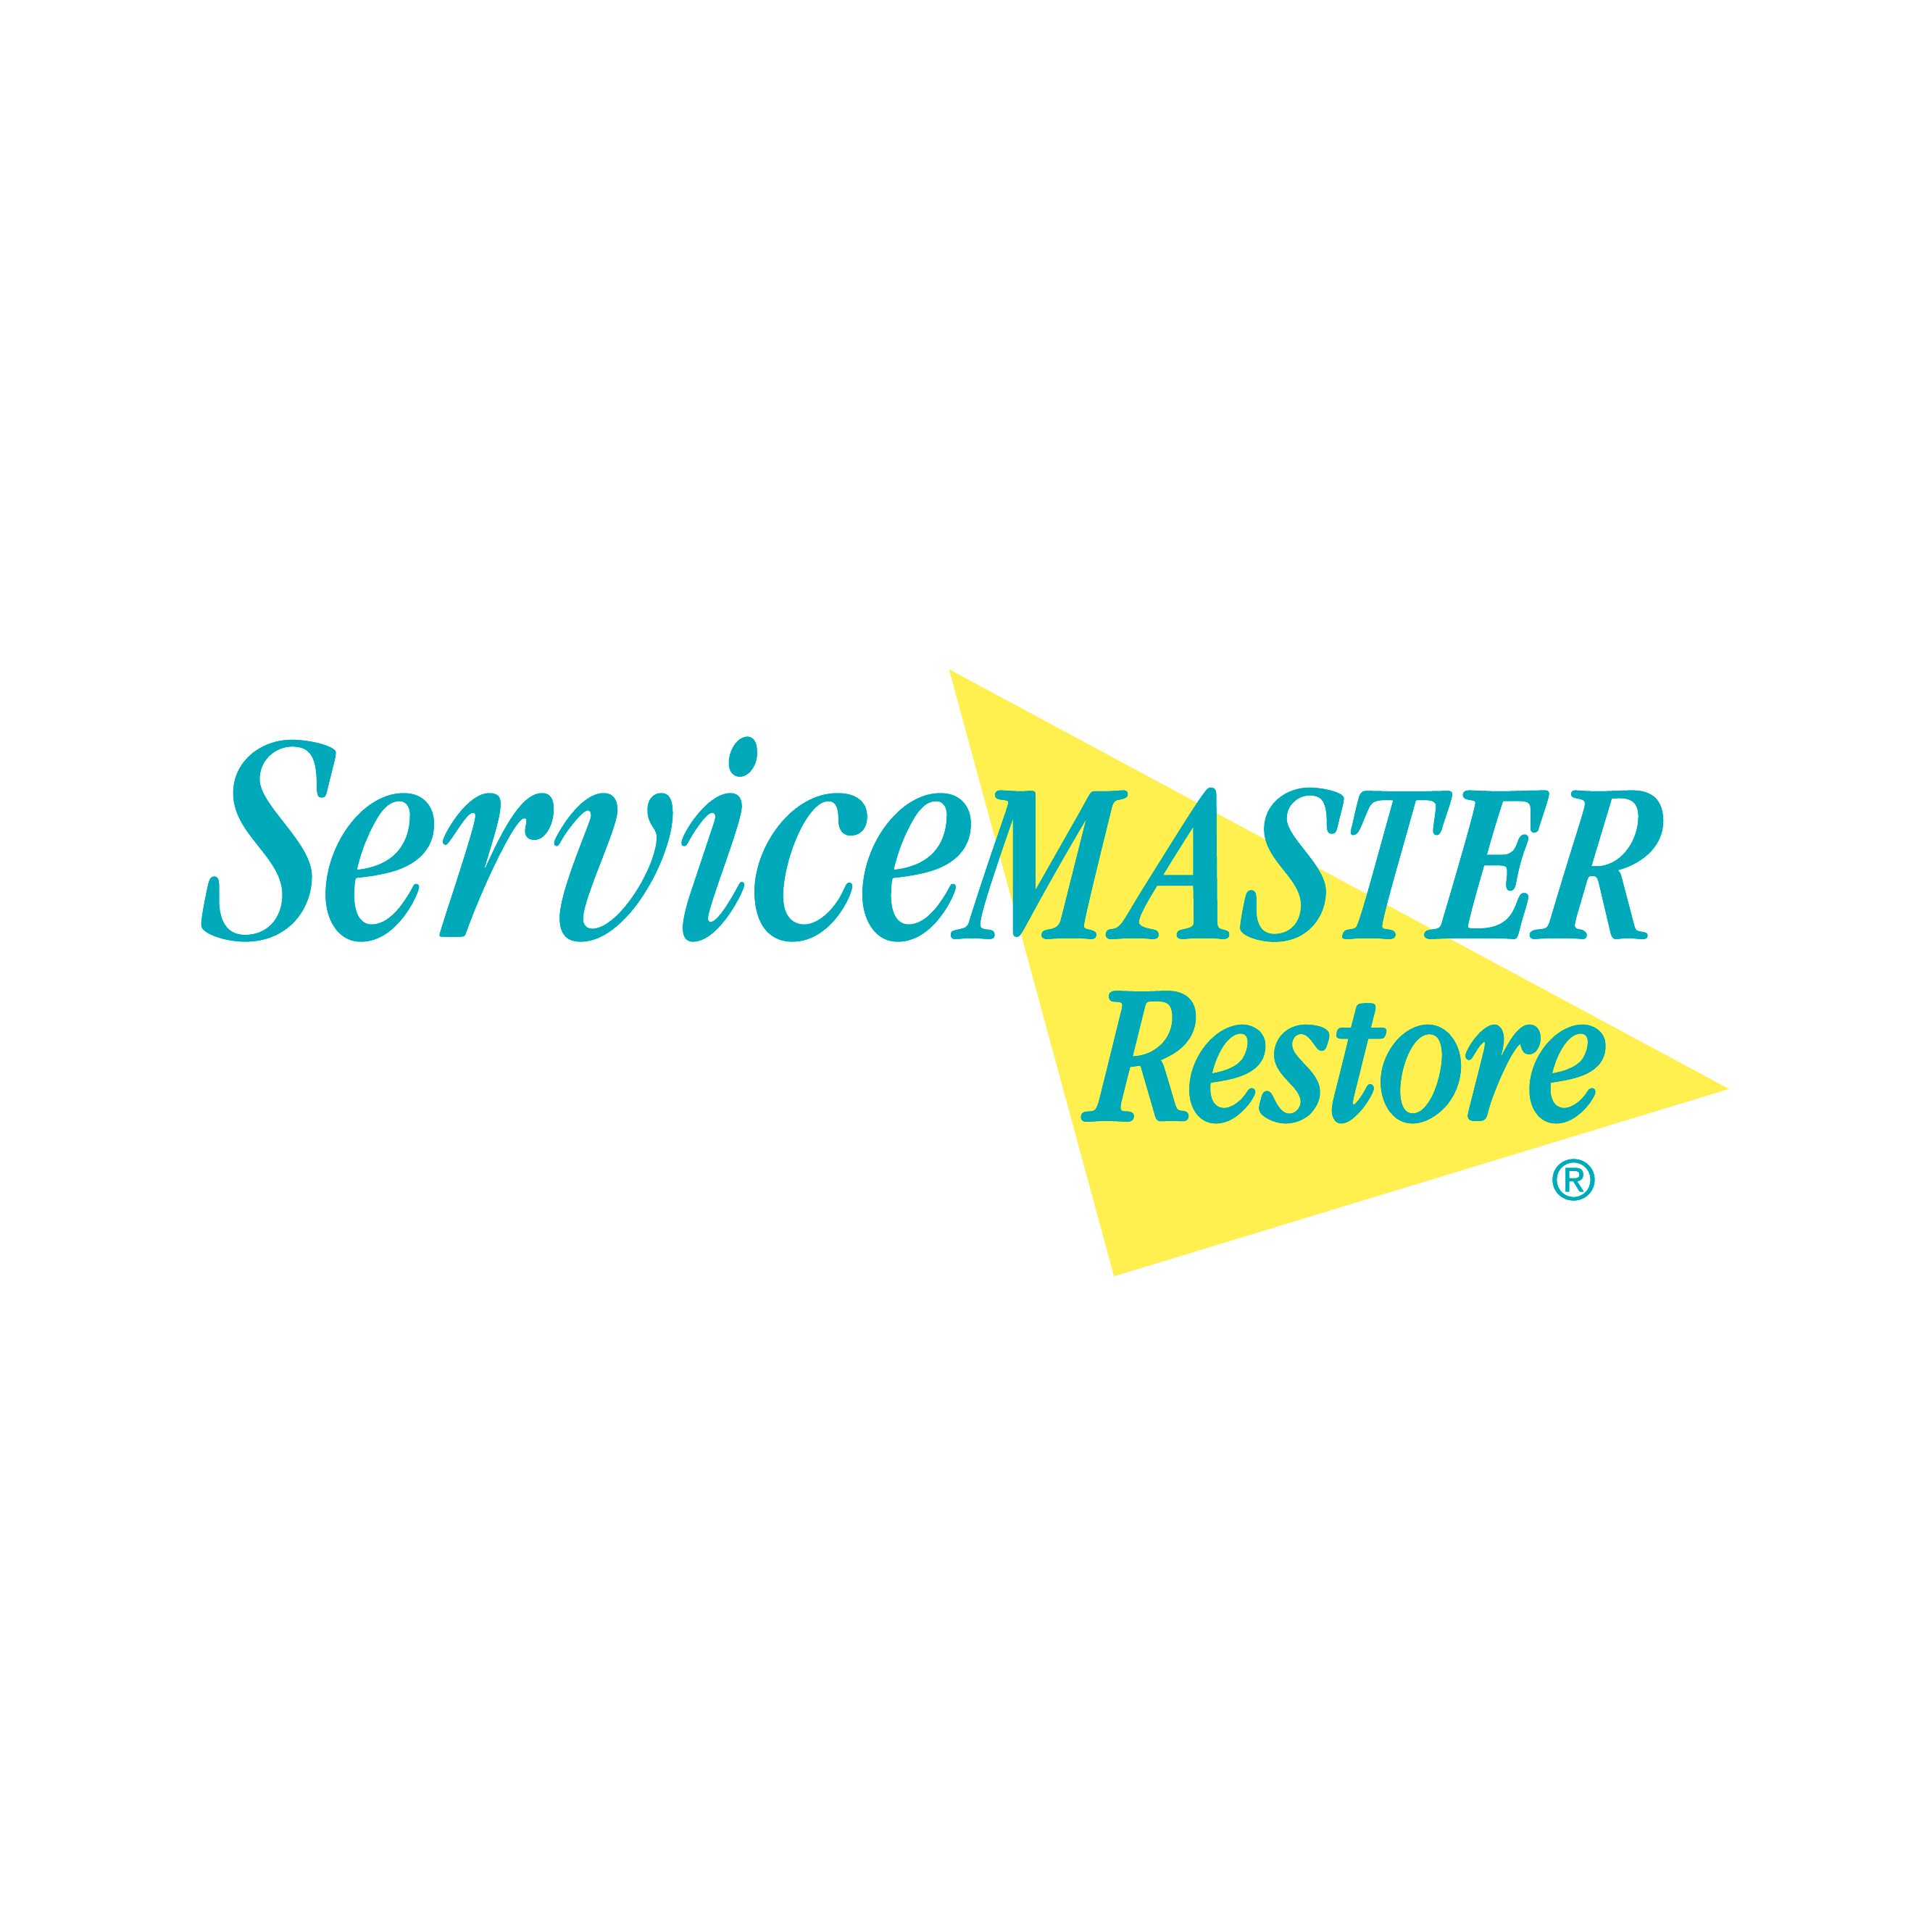 ServiceMaster Restoration by Simons - Chicago